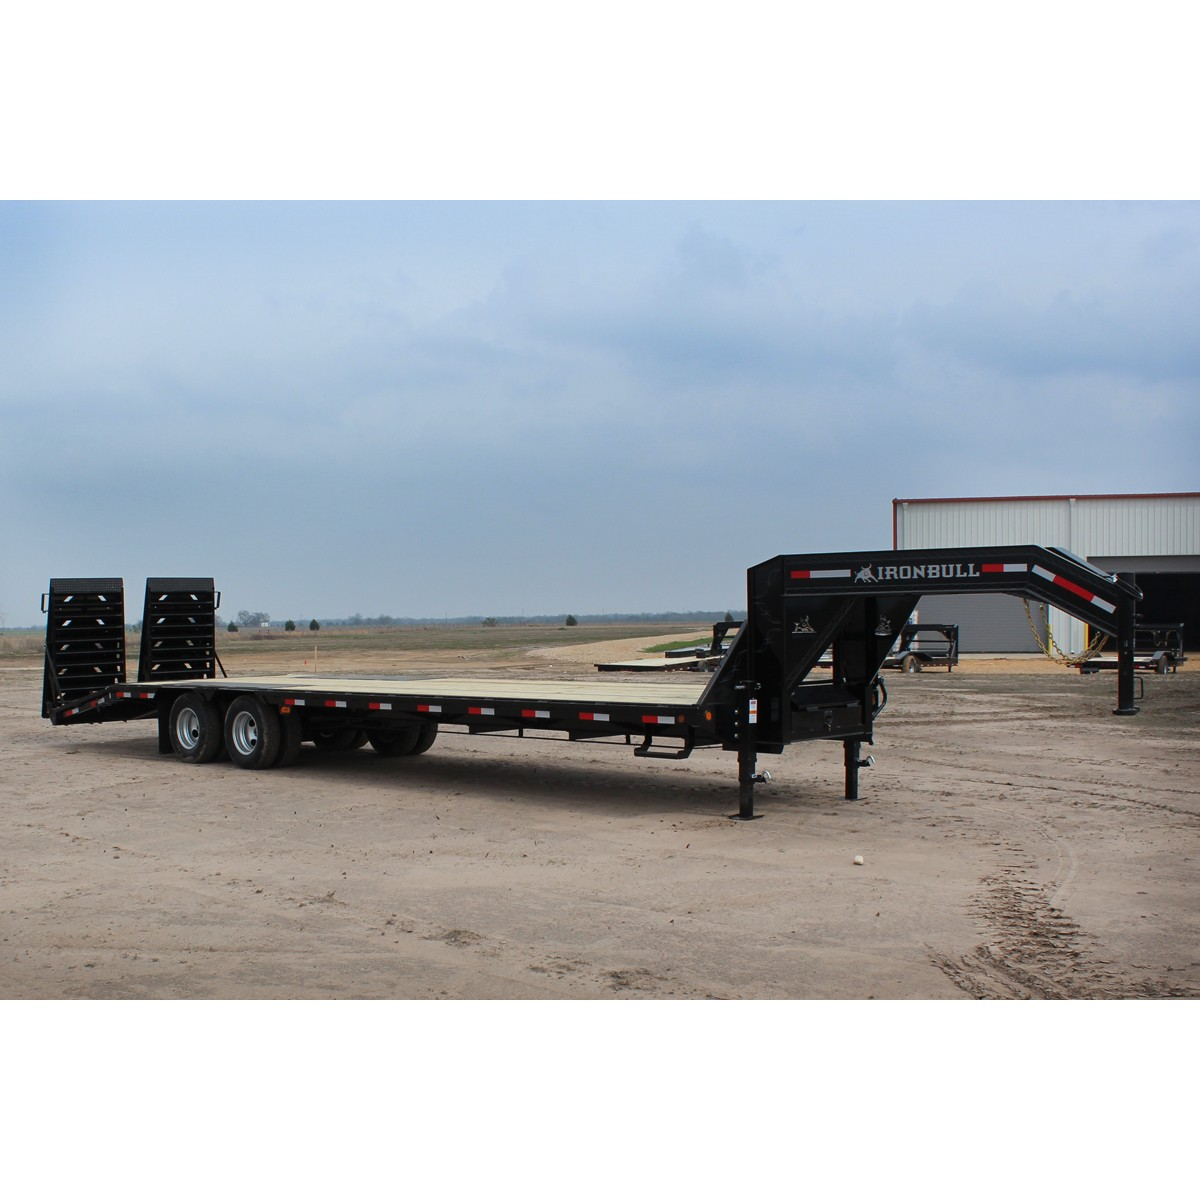 New 32 Iron Bull Low Profile Gooseneck Tandem Dual Double Car Trailer 24 Foot Flatbed Trailers